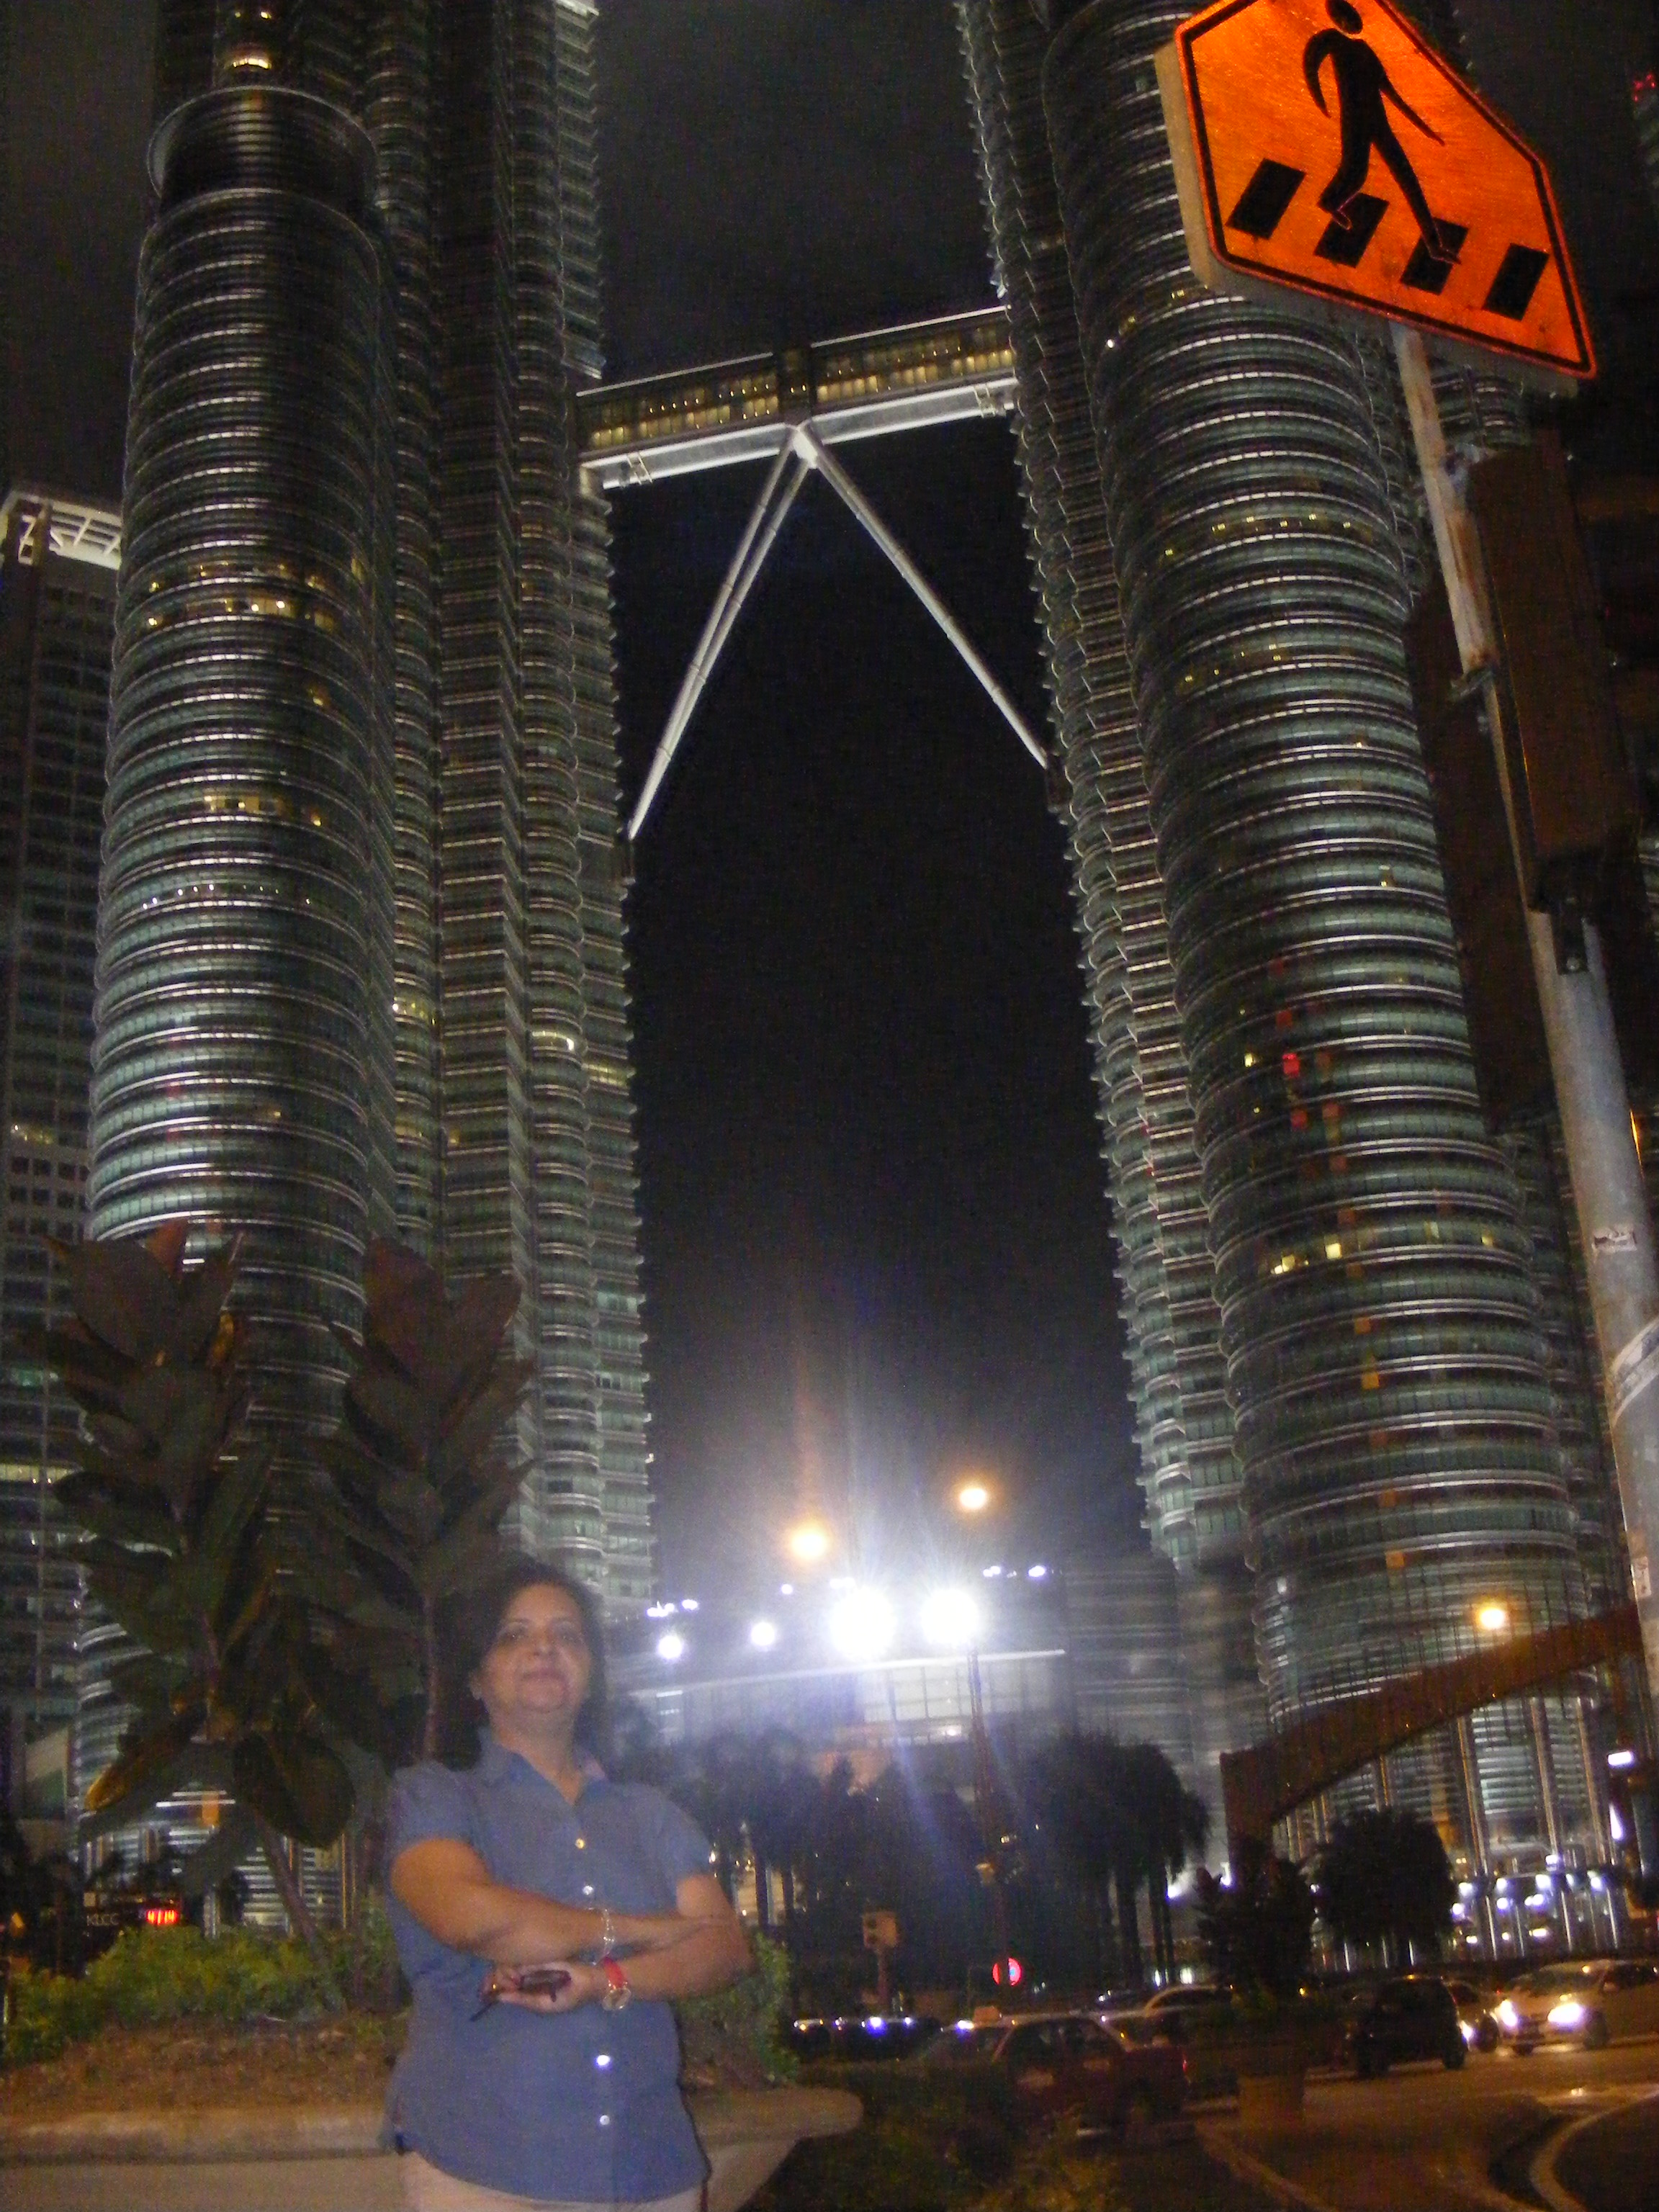 Petronas Tower at 12 in the Night in KL